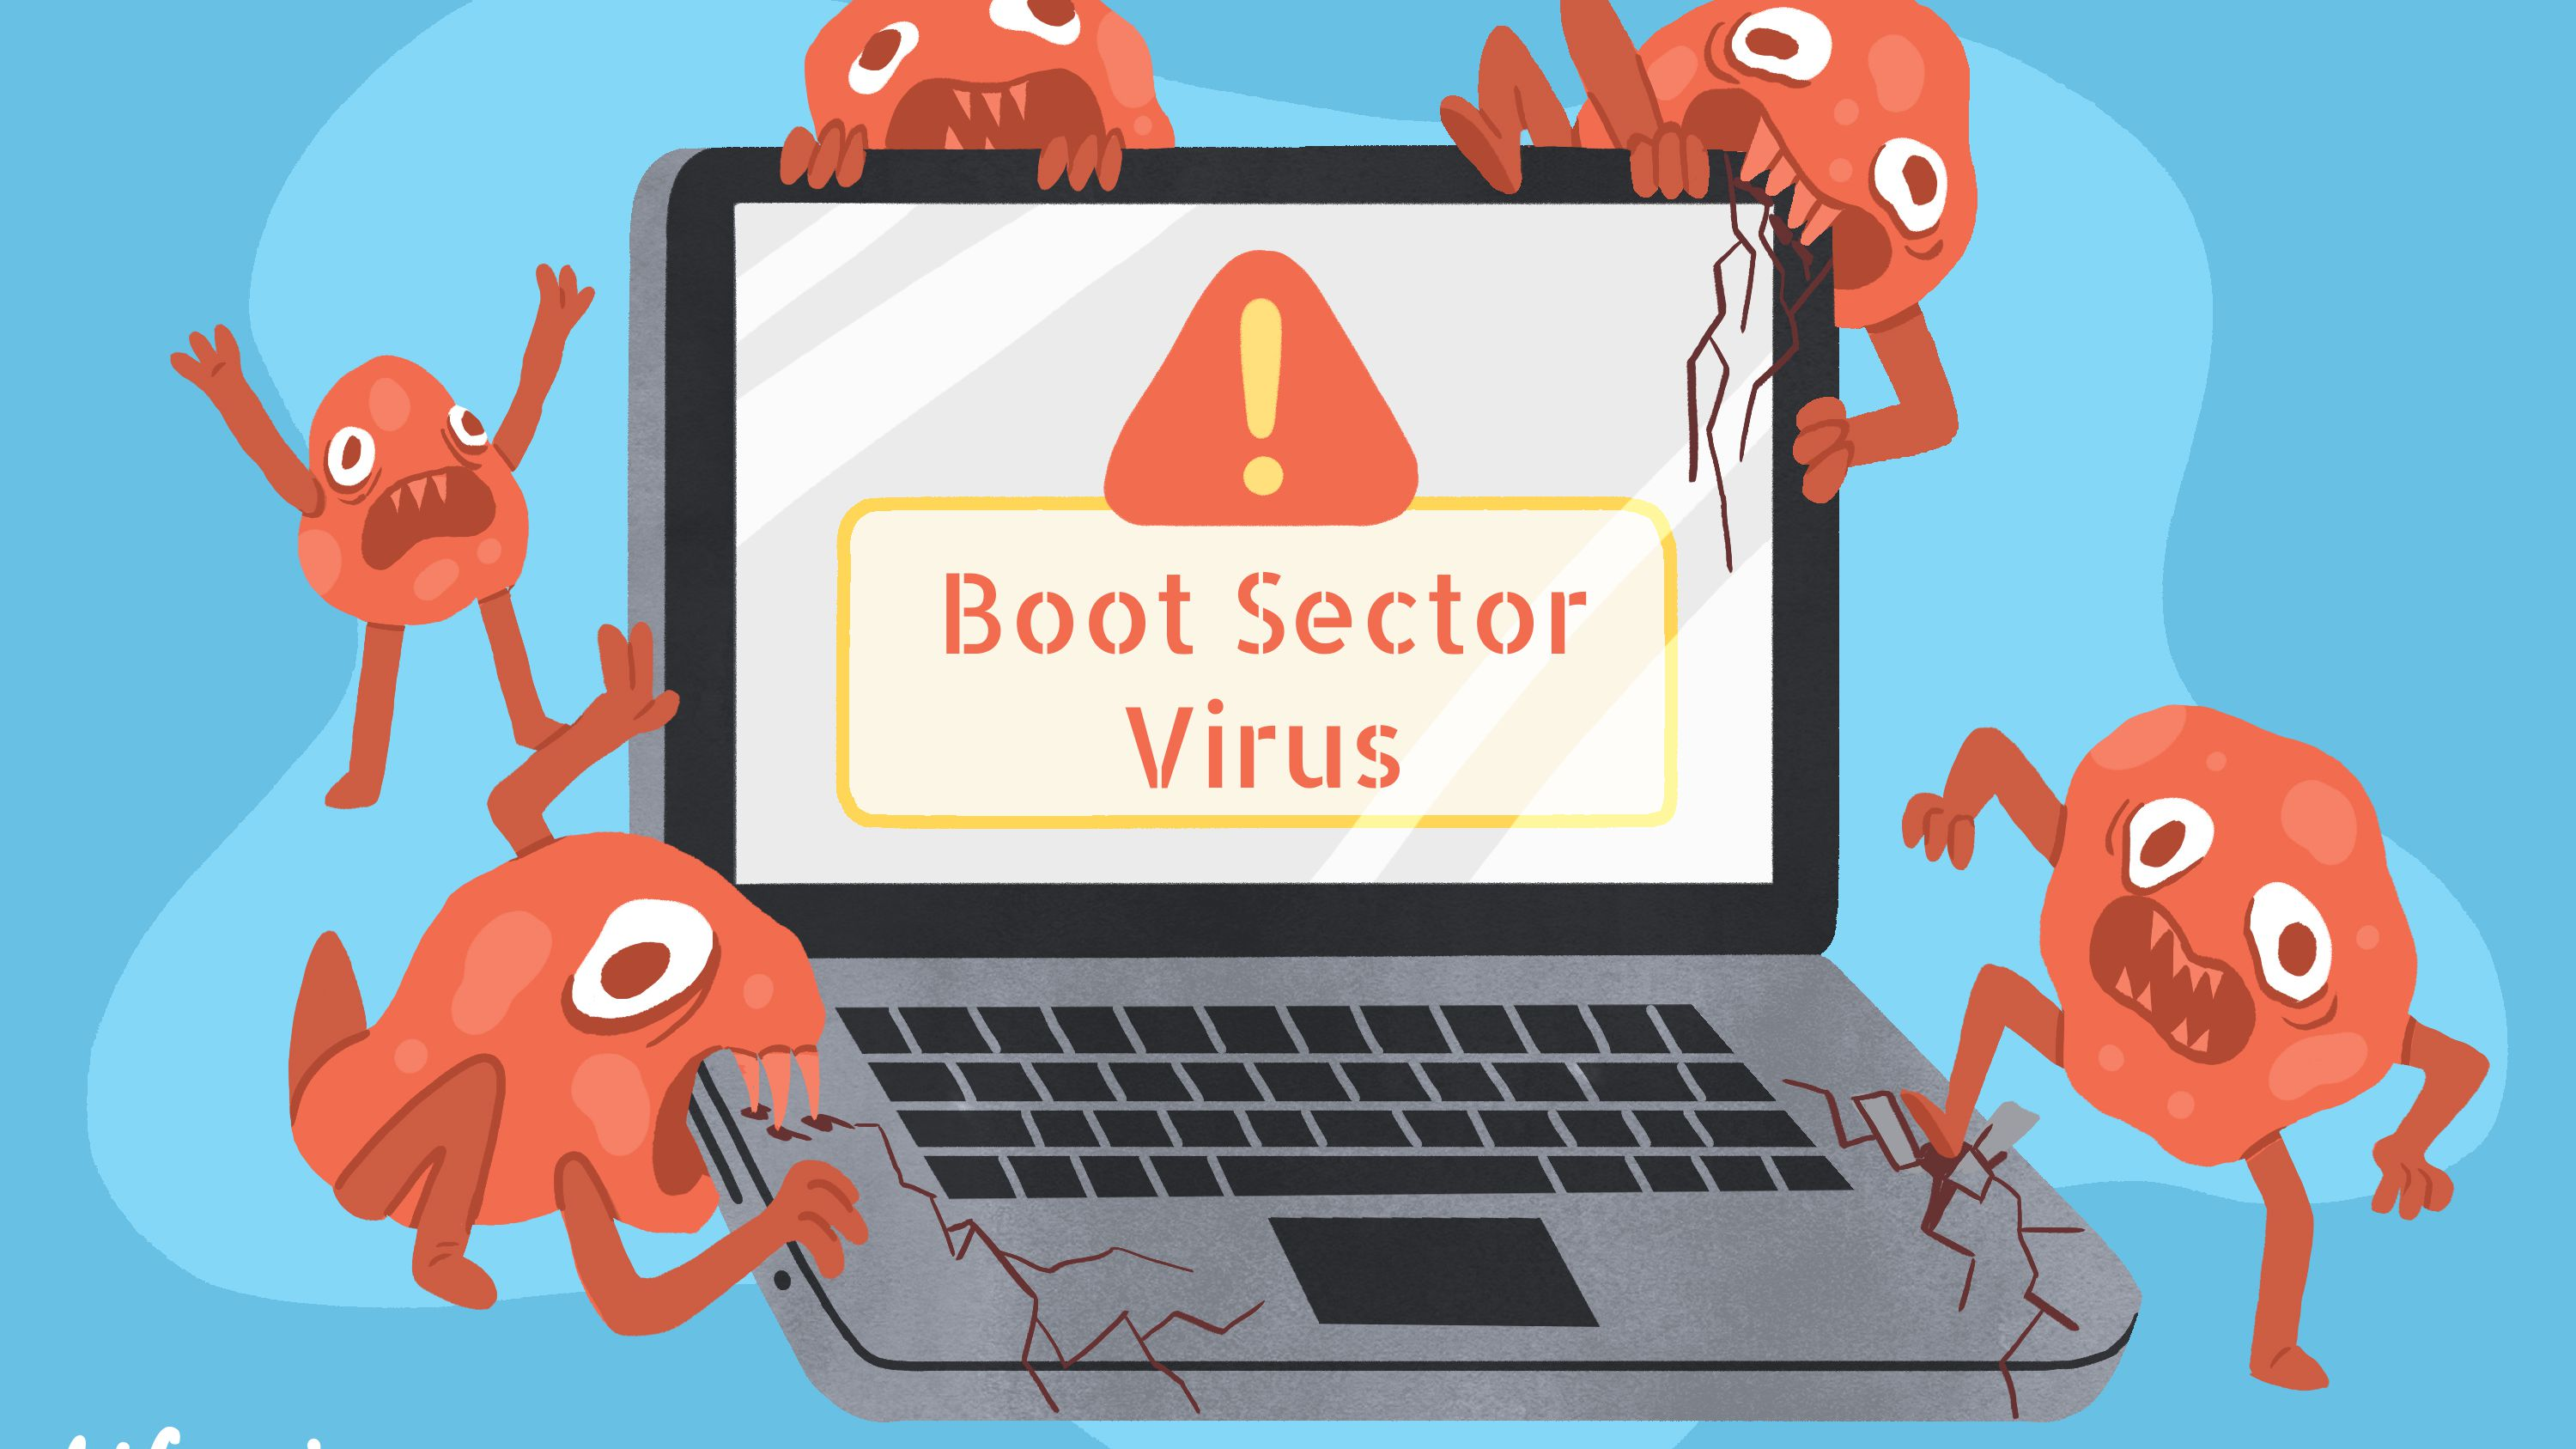 Introduction to boot sector virus and the way to remove it.